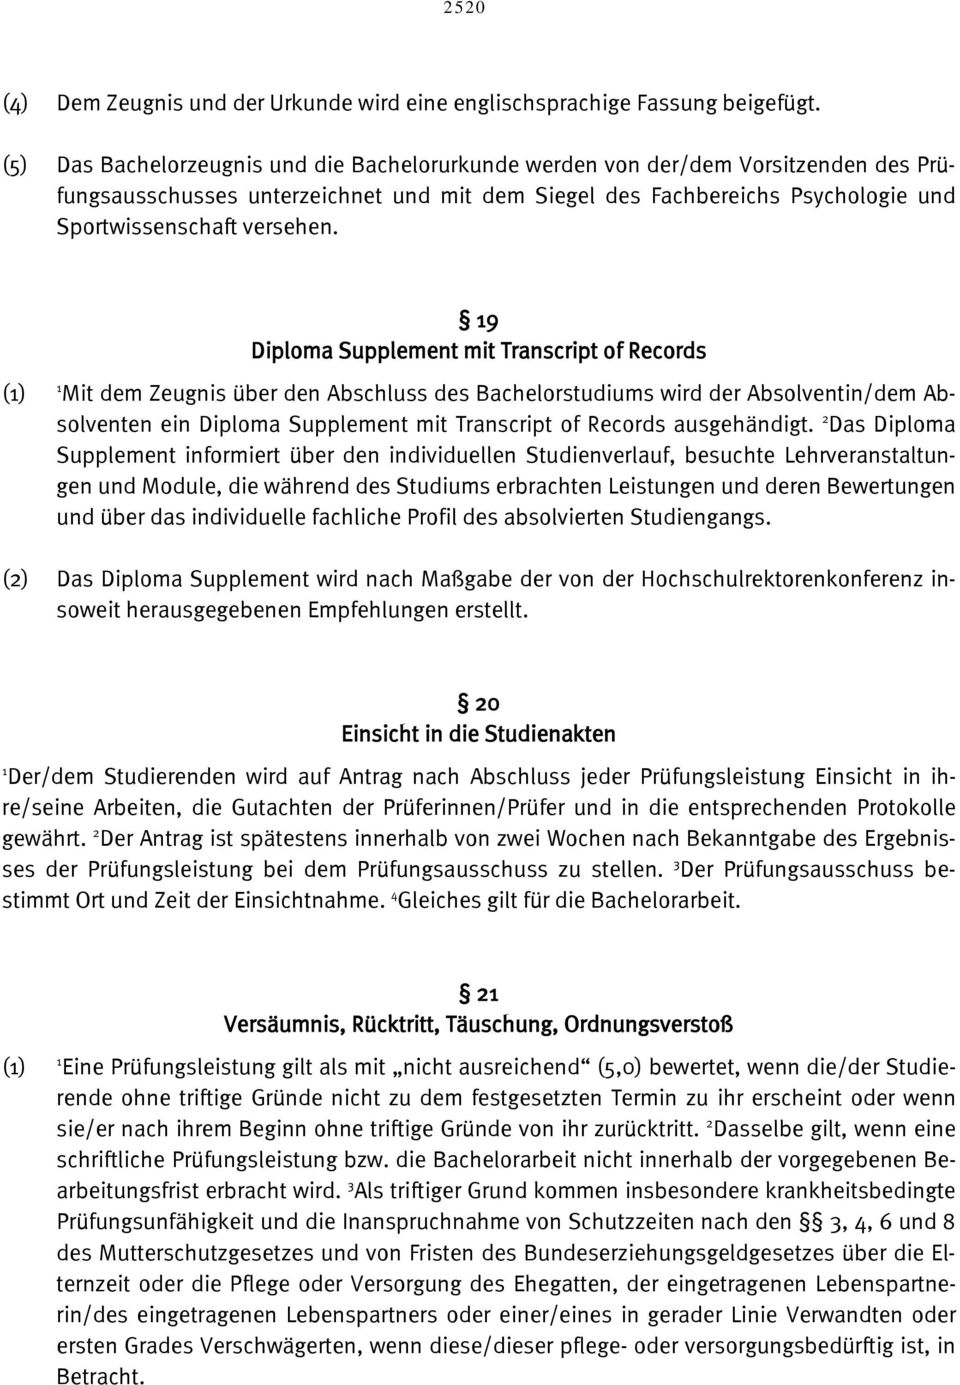 19 Diploma Supplement mit Transcript of Records (1) 1 Mit dem Zeugnis über den Abschluss des Bachelorstudiums wird der Absolventin/dem Absolventen ein Diploma Supplement mit Transcript of Records